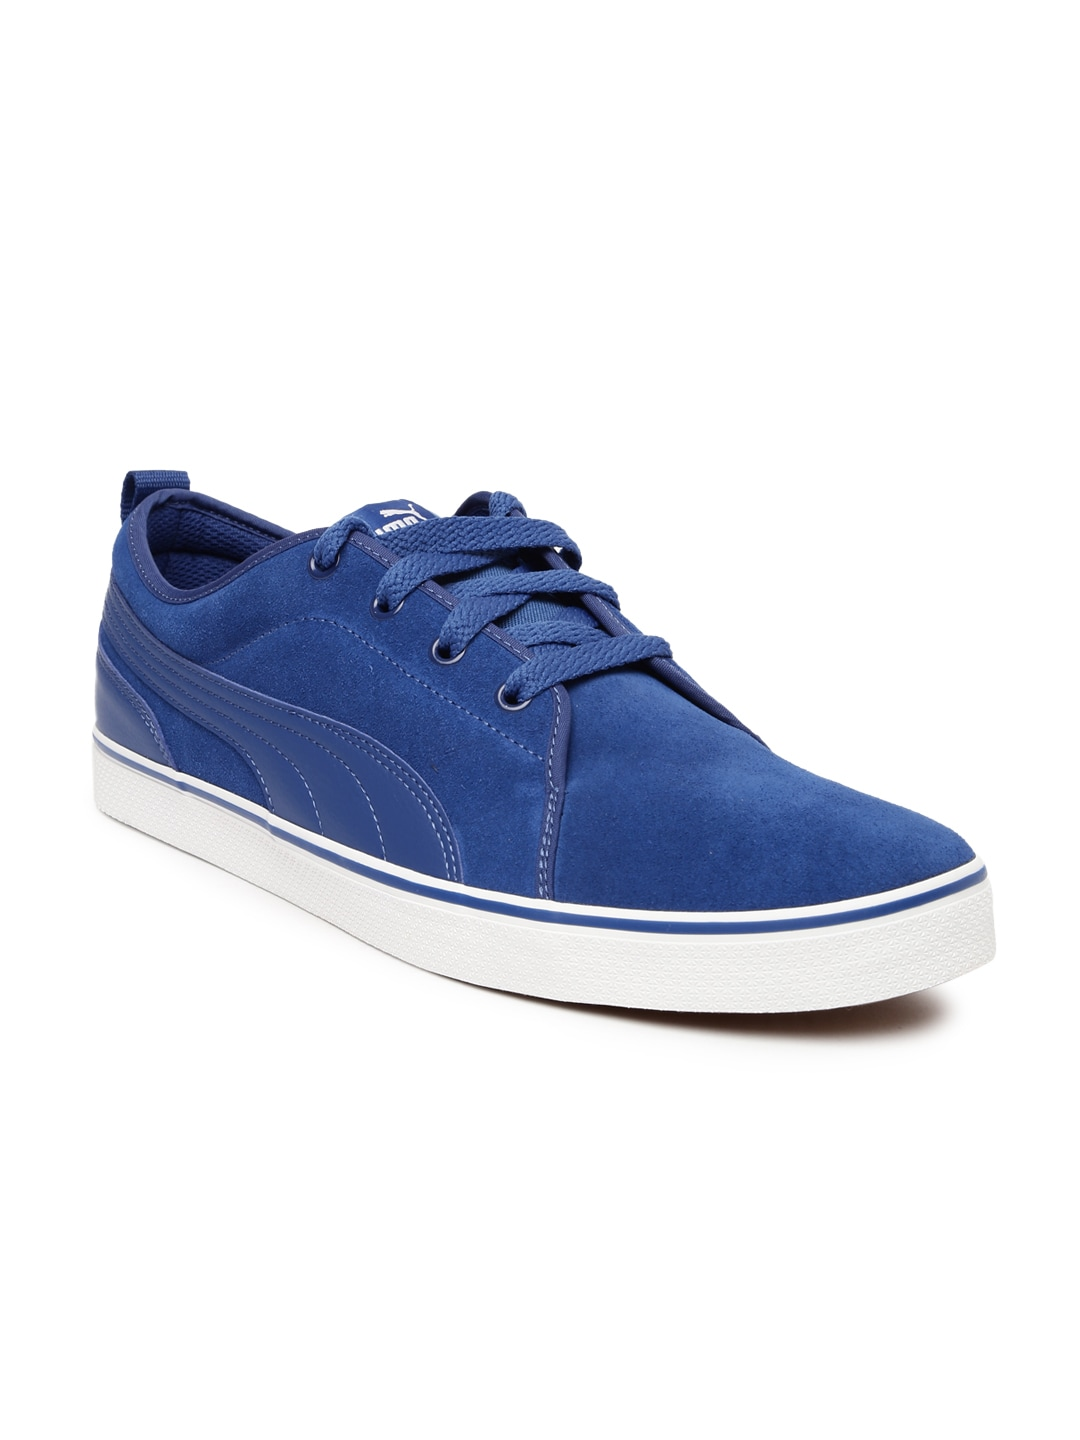 286d03c90286 Eco Ortholite Casual Shoes S - Buy Eco Ortholite Casual Shoes S online in  India